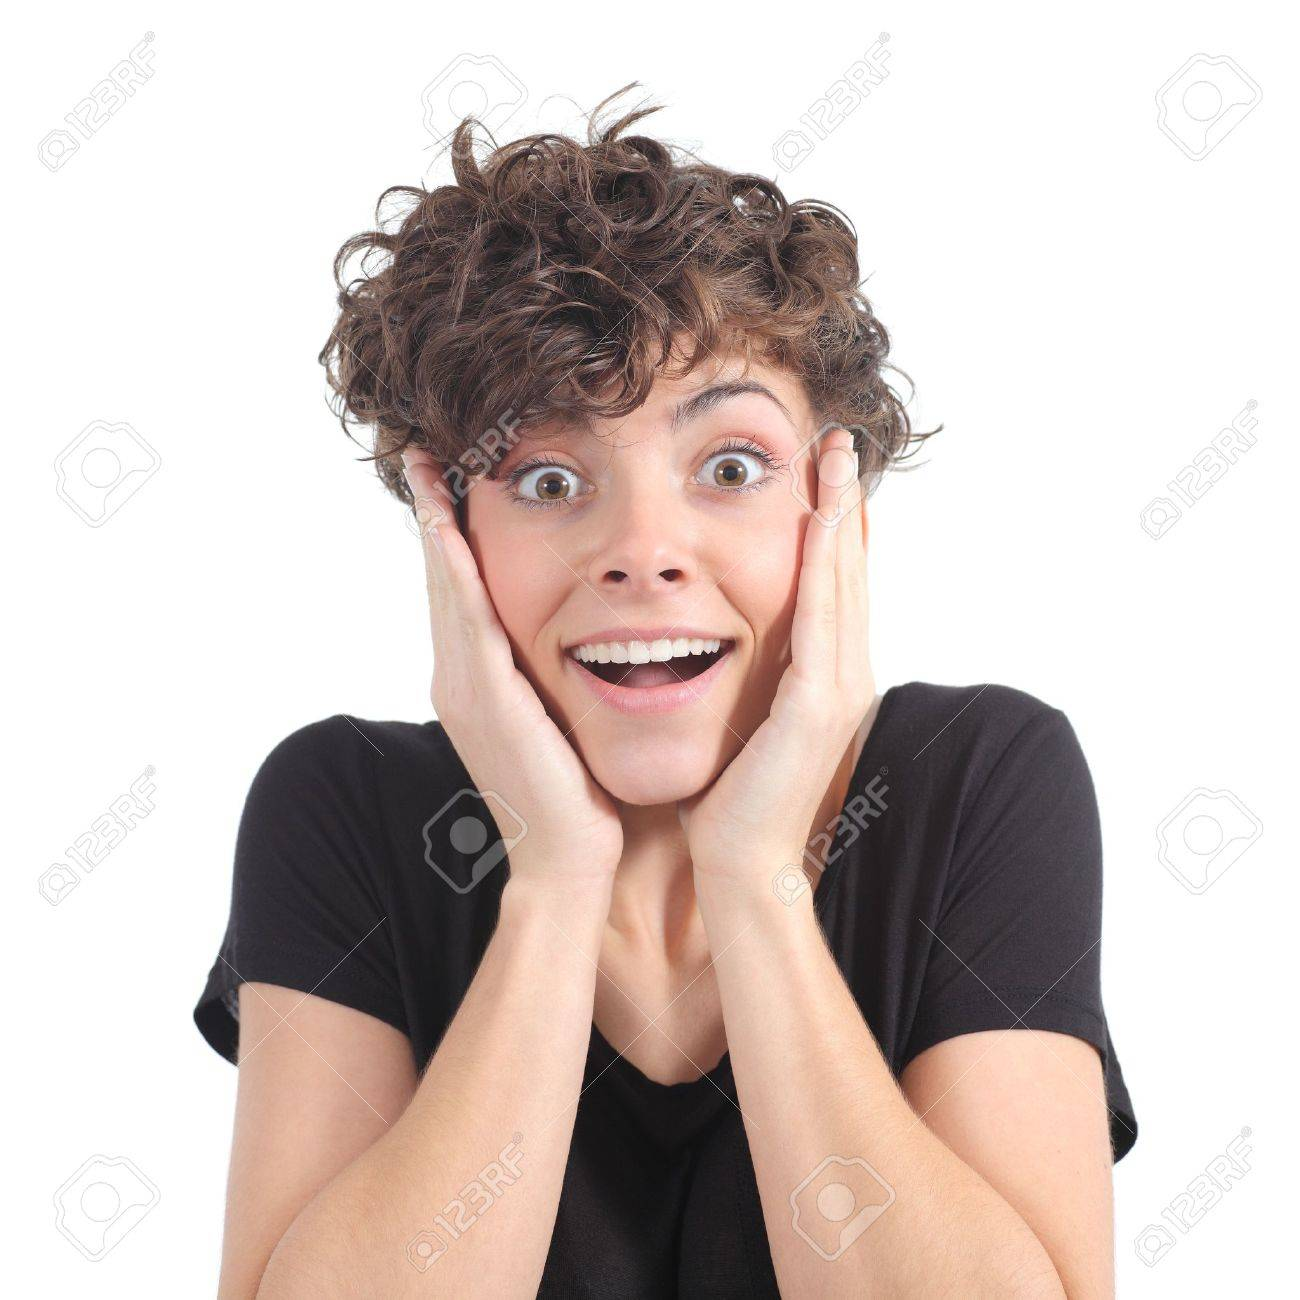 Euphoric expression of a woman with her hands on the face on a white isolated background Stock Photo - 18567696